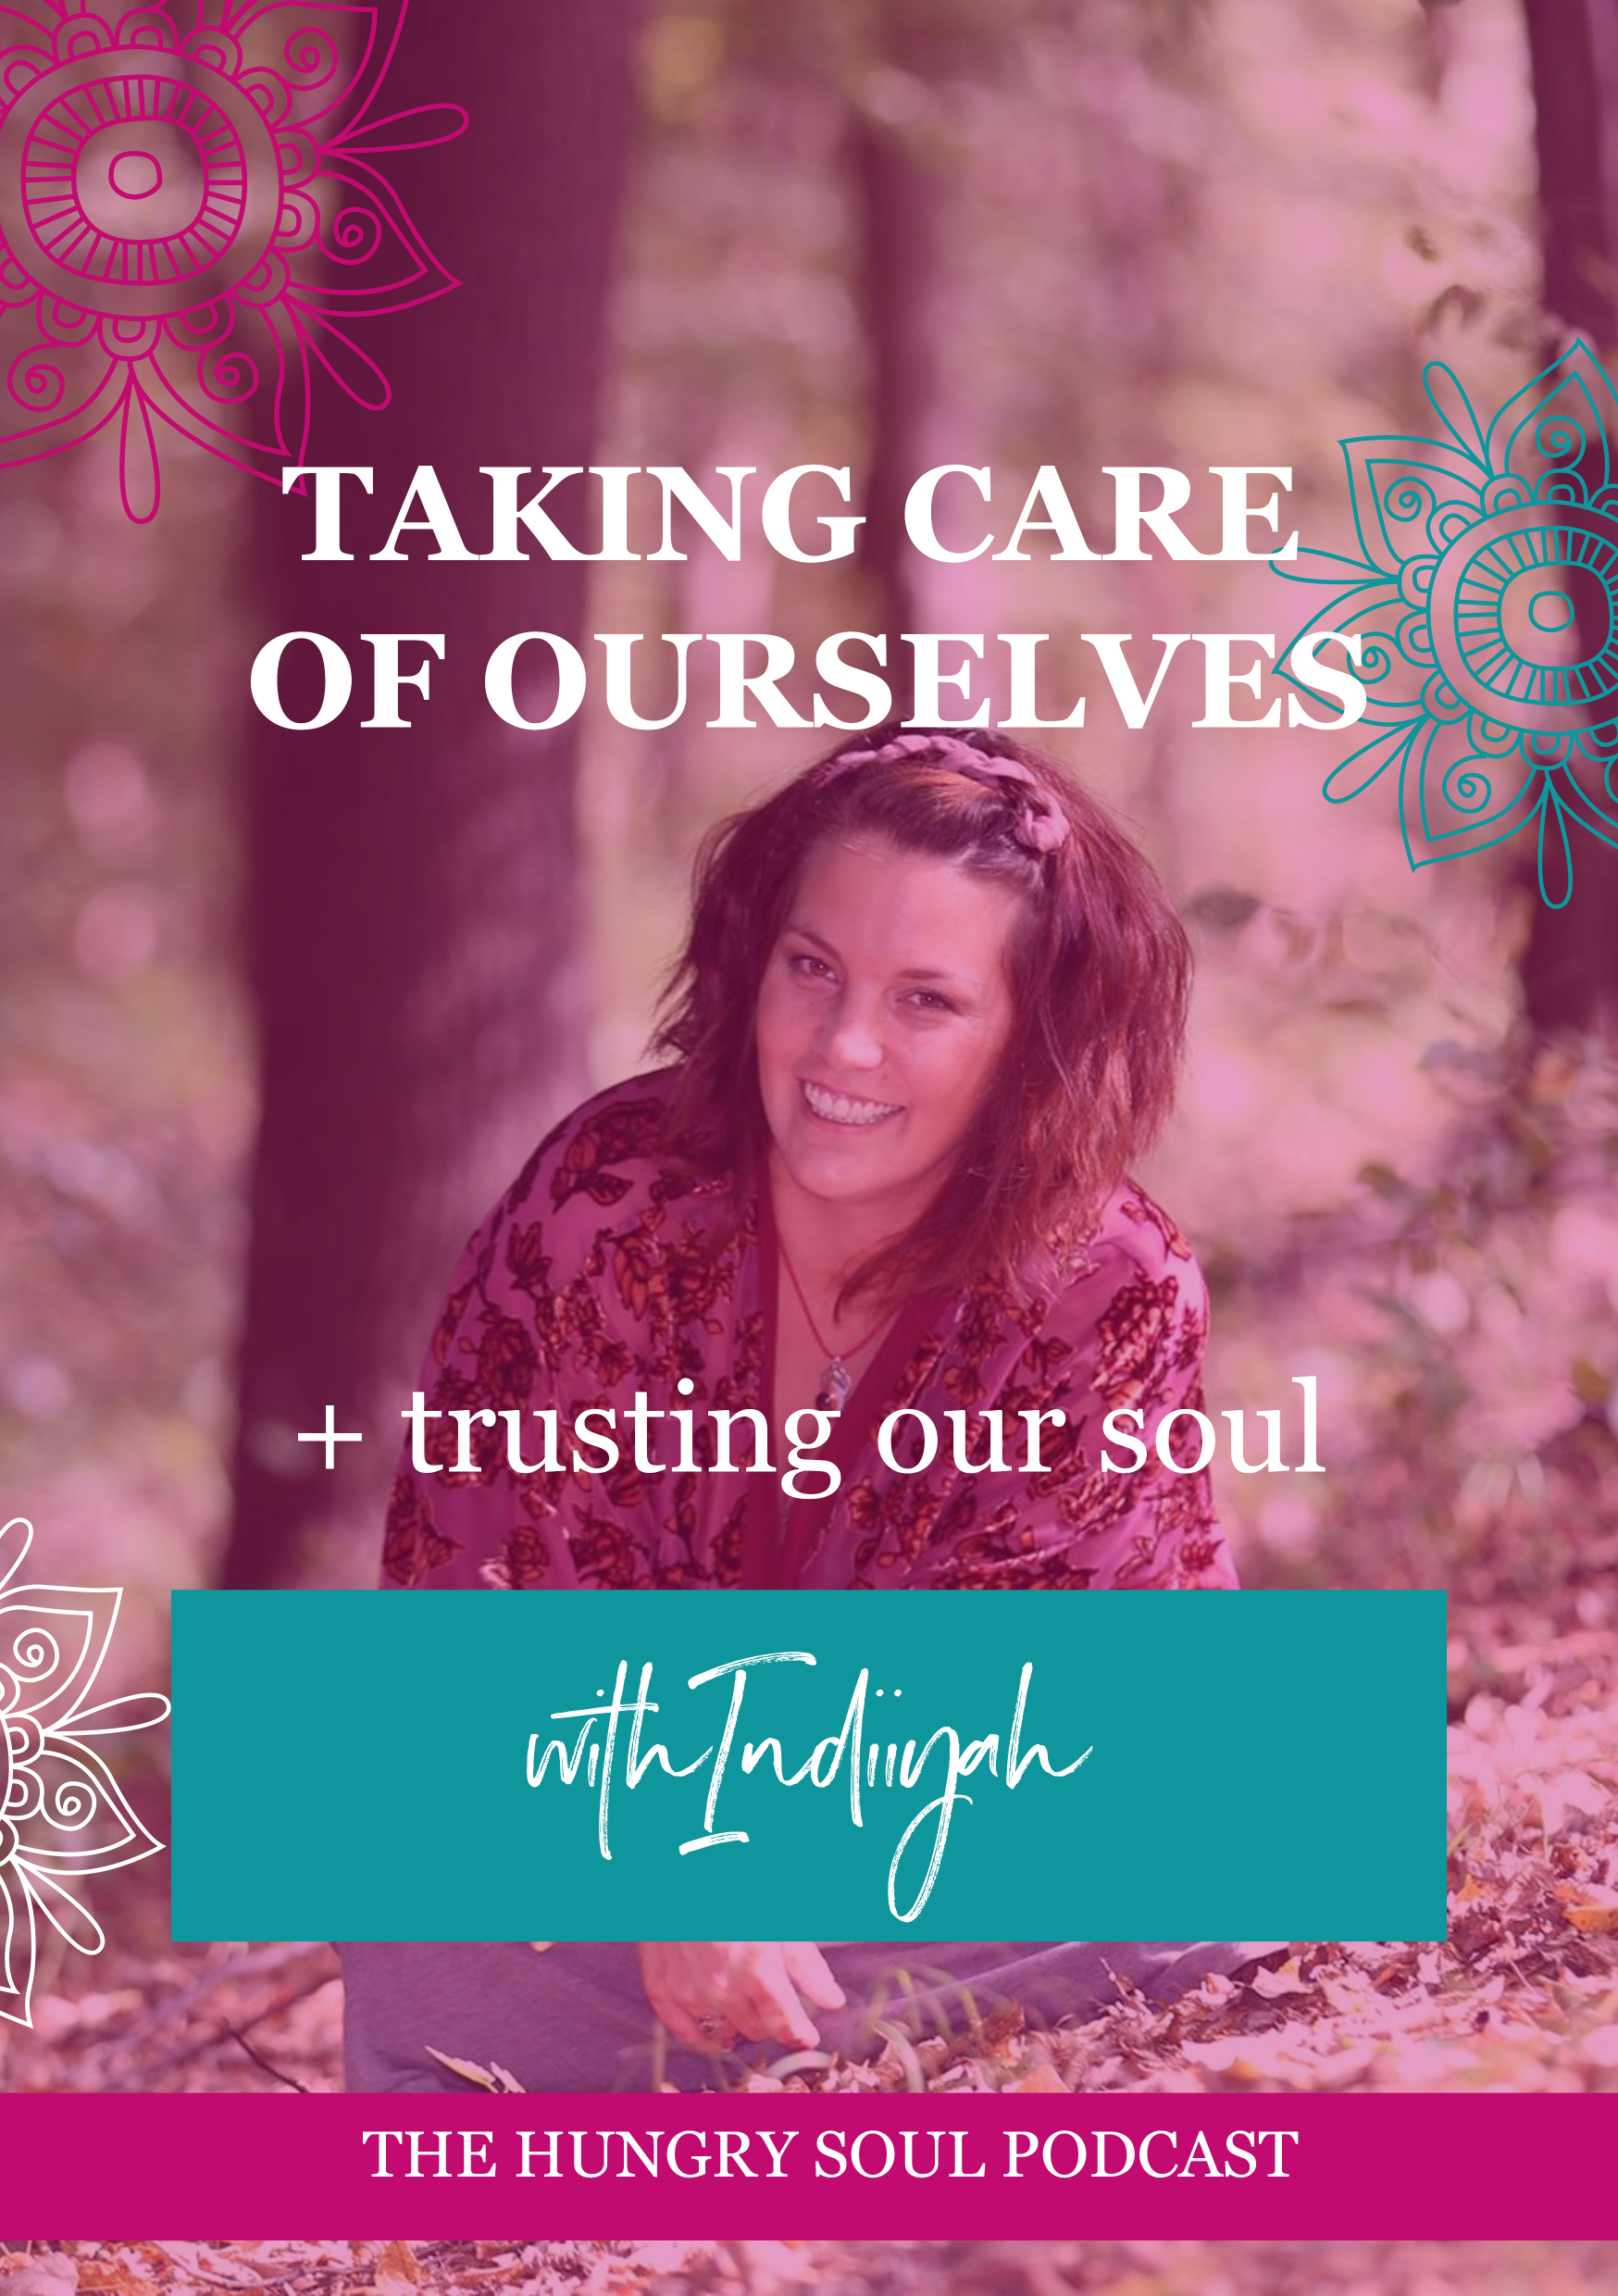 The Hungry Soul host Rachel Foy interviews Sarah Negus on being a modern day shaman, and how we can learn to understand ourselves better